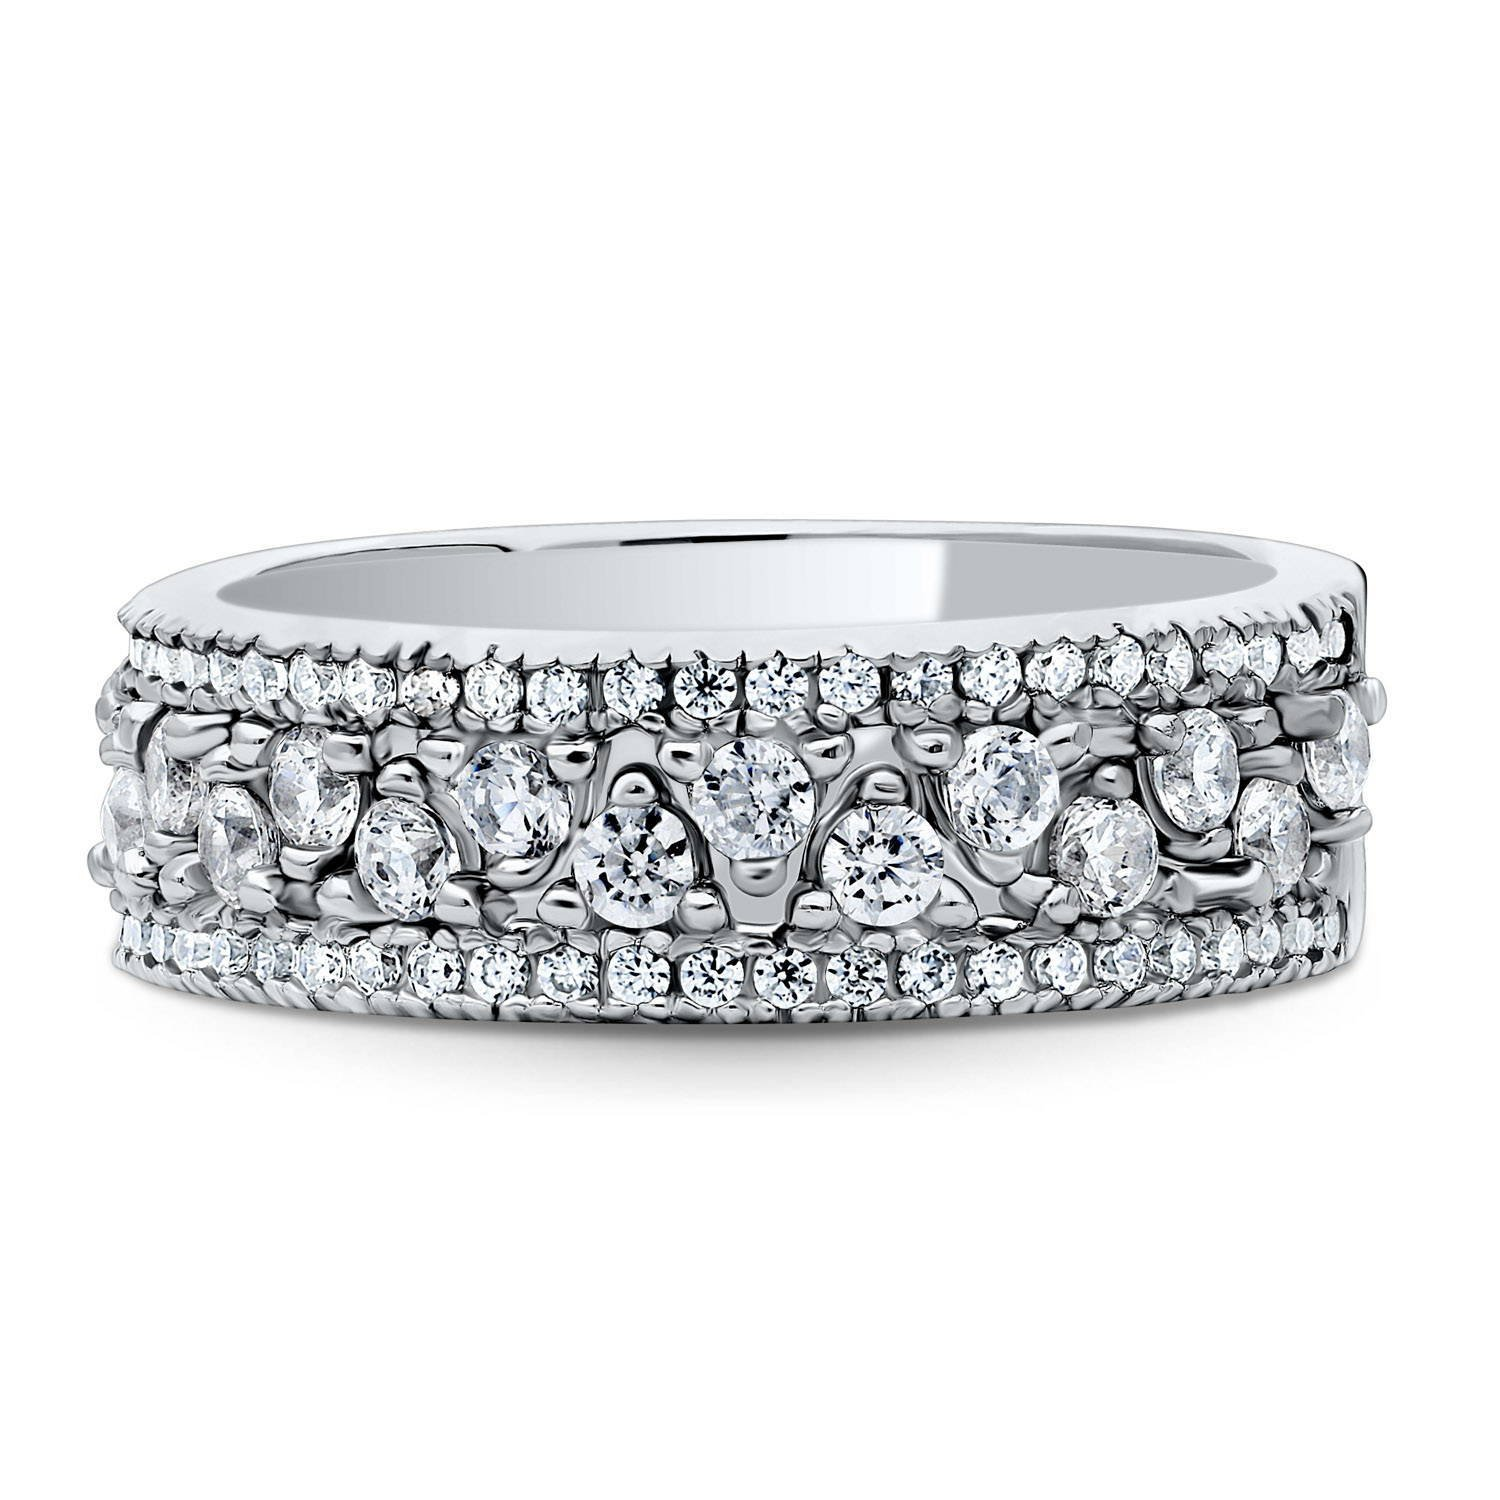 BERRICLE Platinum Plated Sterling Silver Cubic Zirconia CZ Sawtooth Stackable Ring Set Size 5